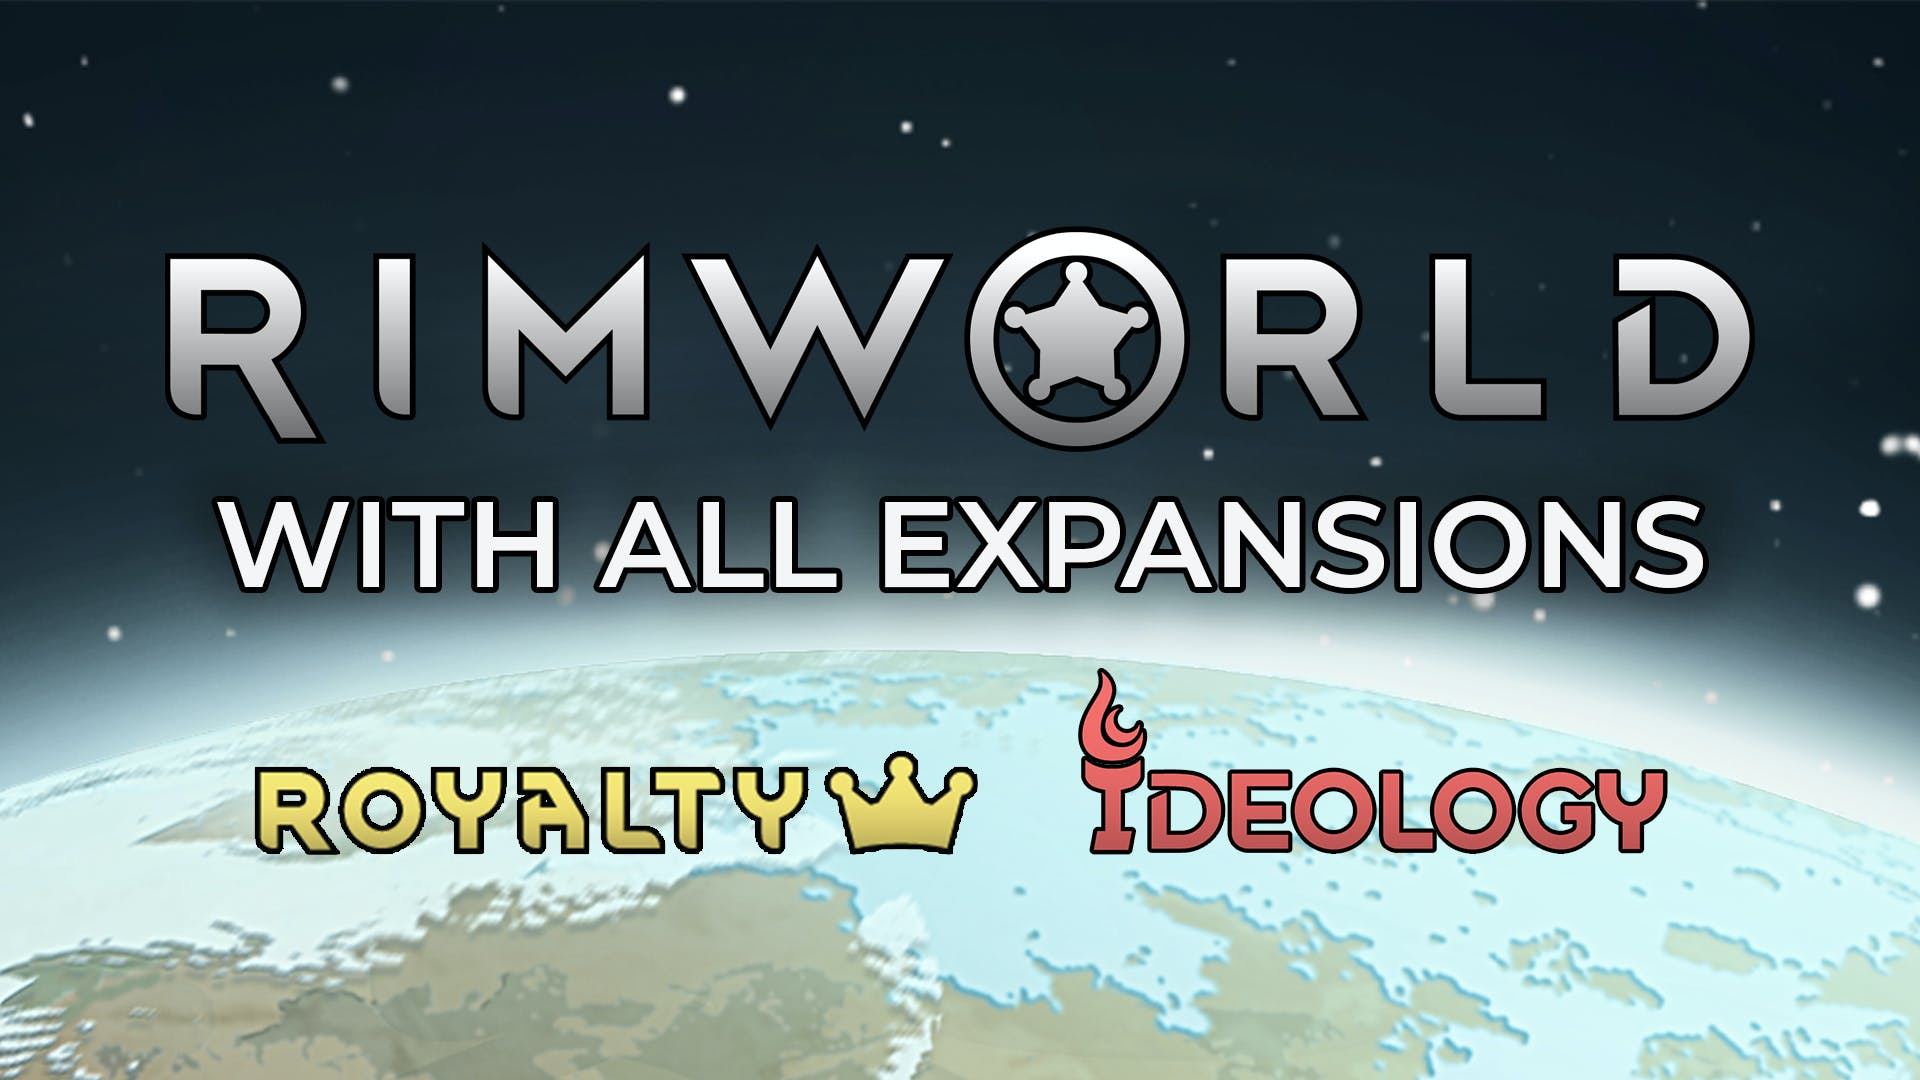 RIMWORLD WITH ALL EXPANSIONS